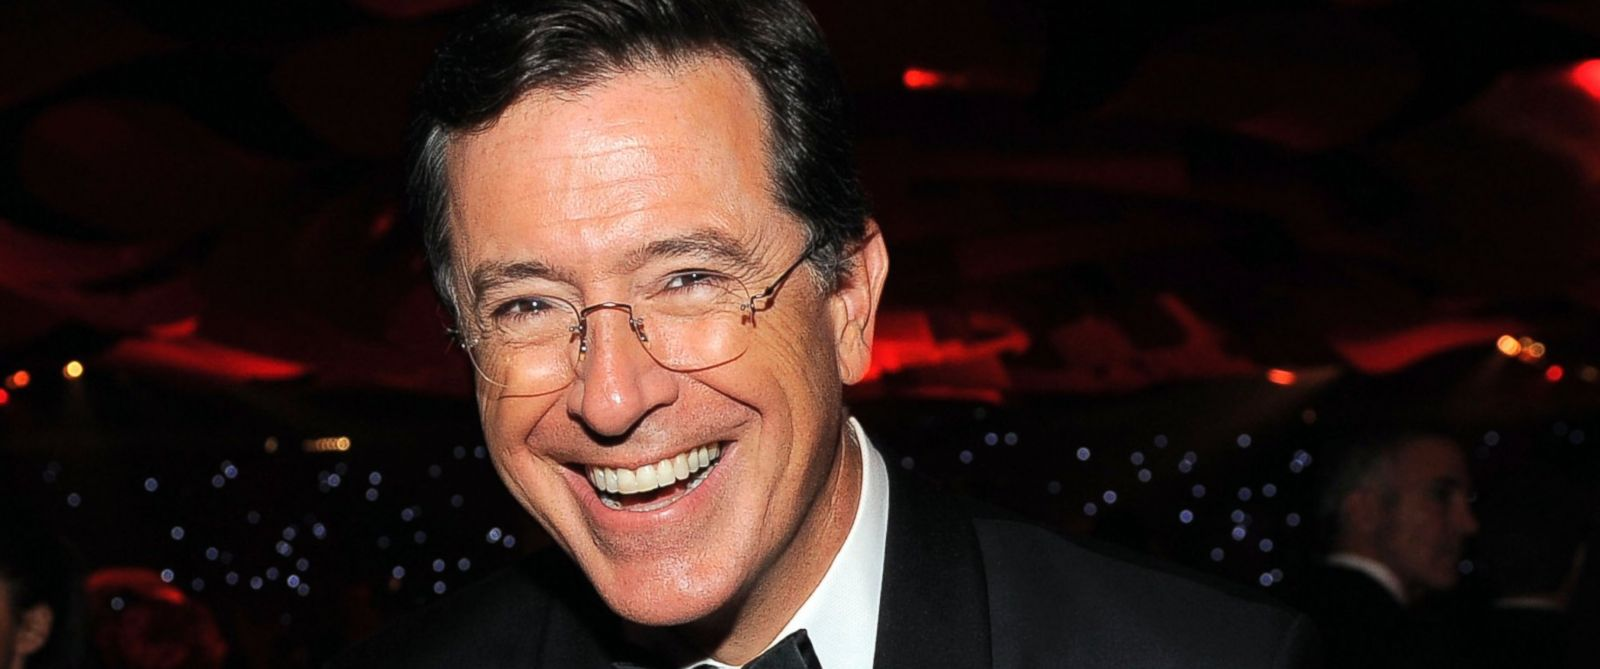 PHOTO: This Sept. 23, 2012 file photo shows TV personality Stephen Colbert at the 64th Primetime Emmy Awards Governors Ball in Los Angeles.